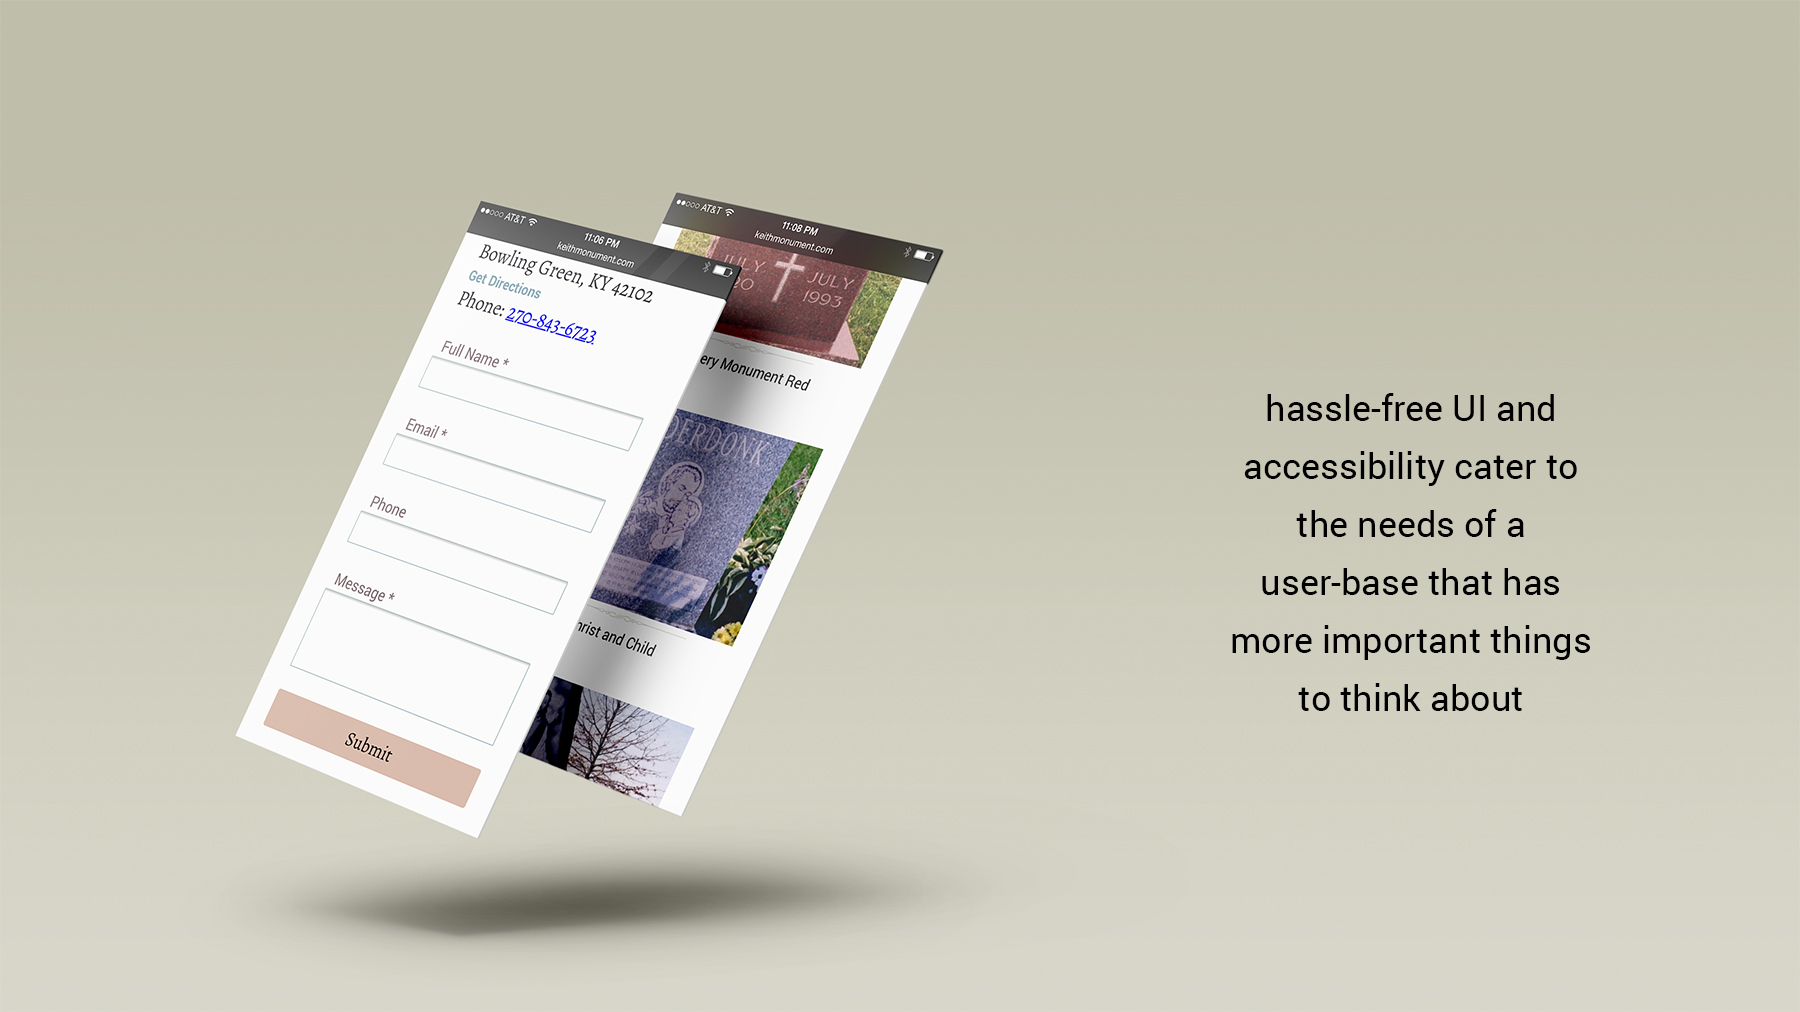 Hassle-free UI and accessibility cater to the needs of a user-base that has more important things to think about.